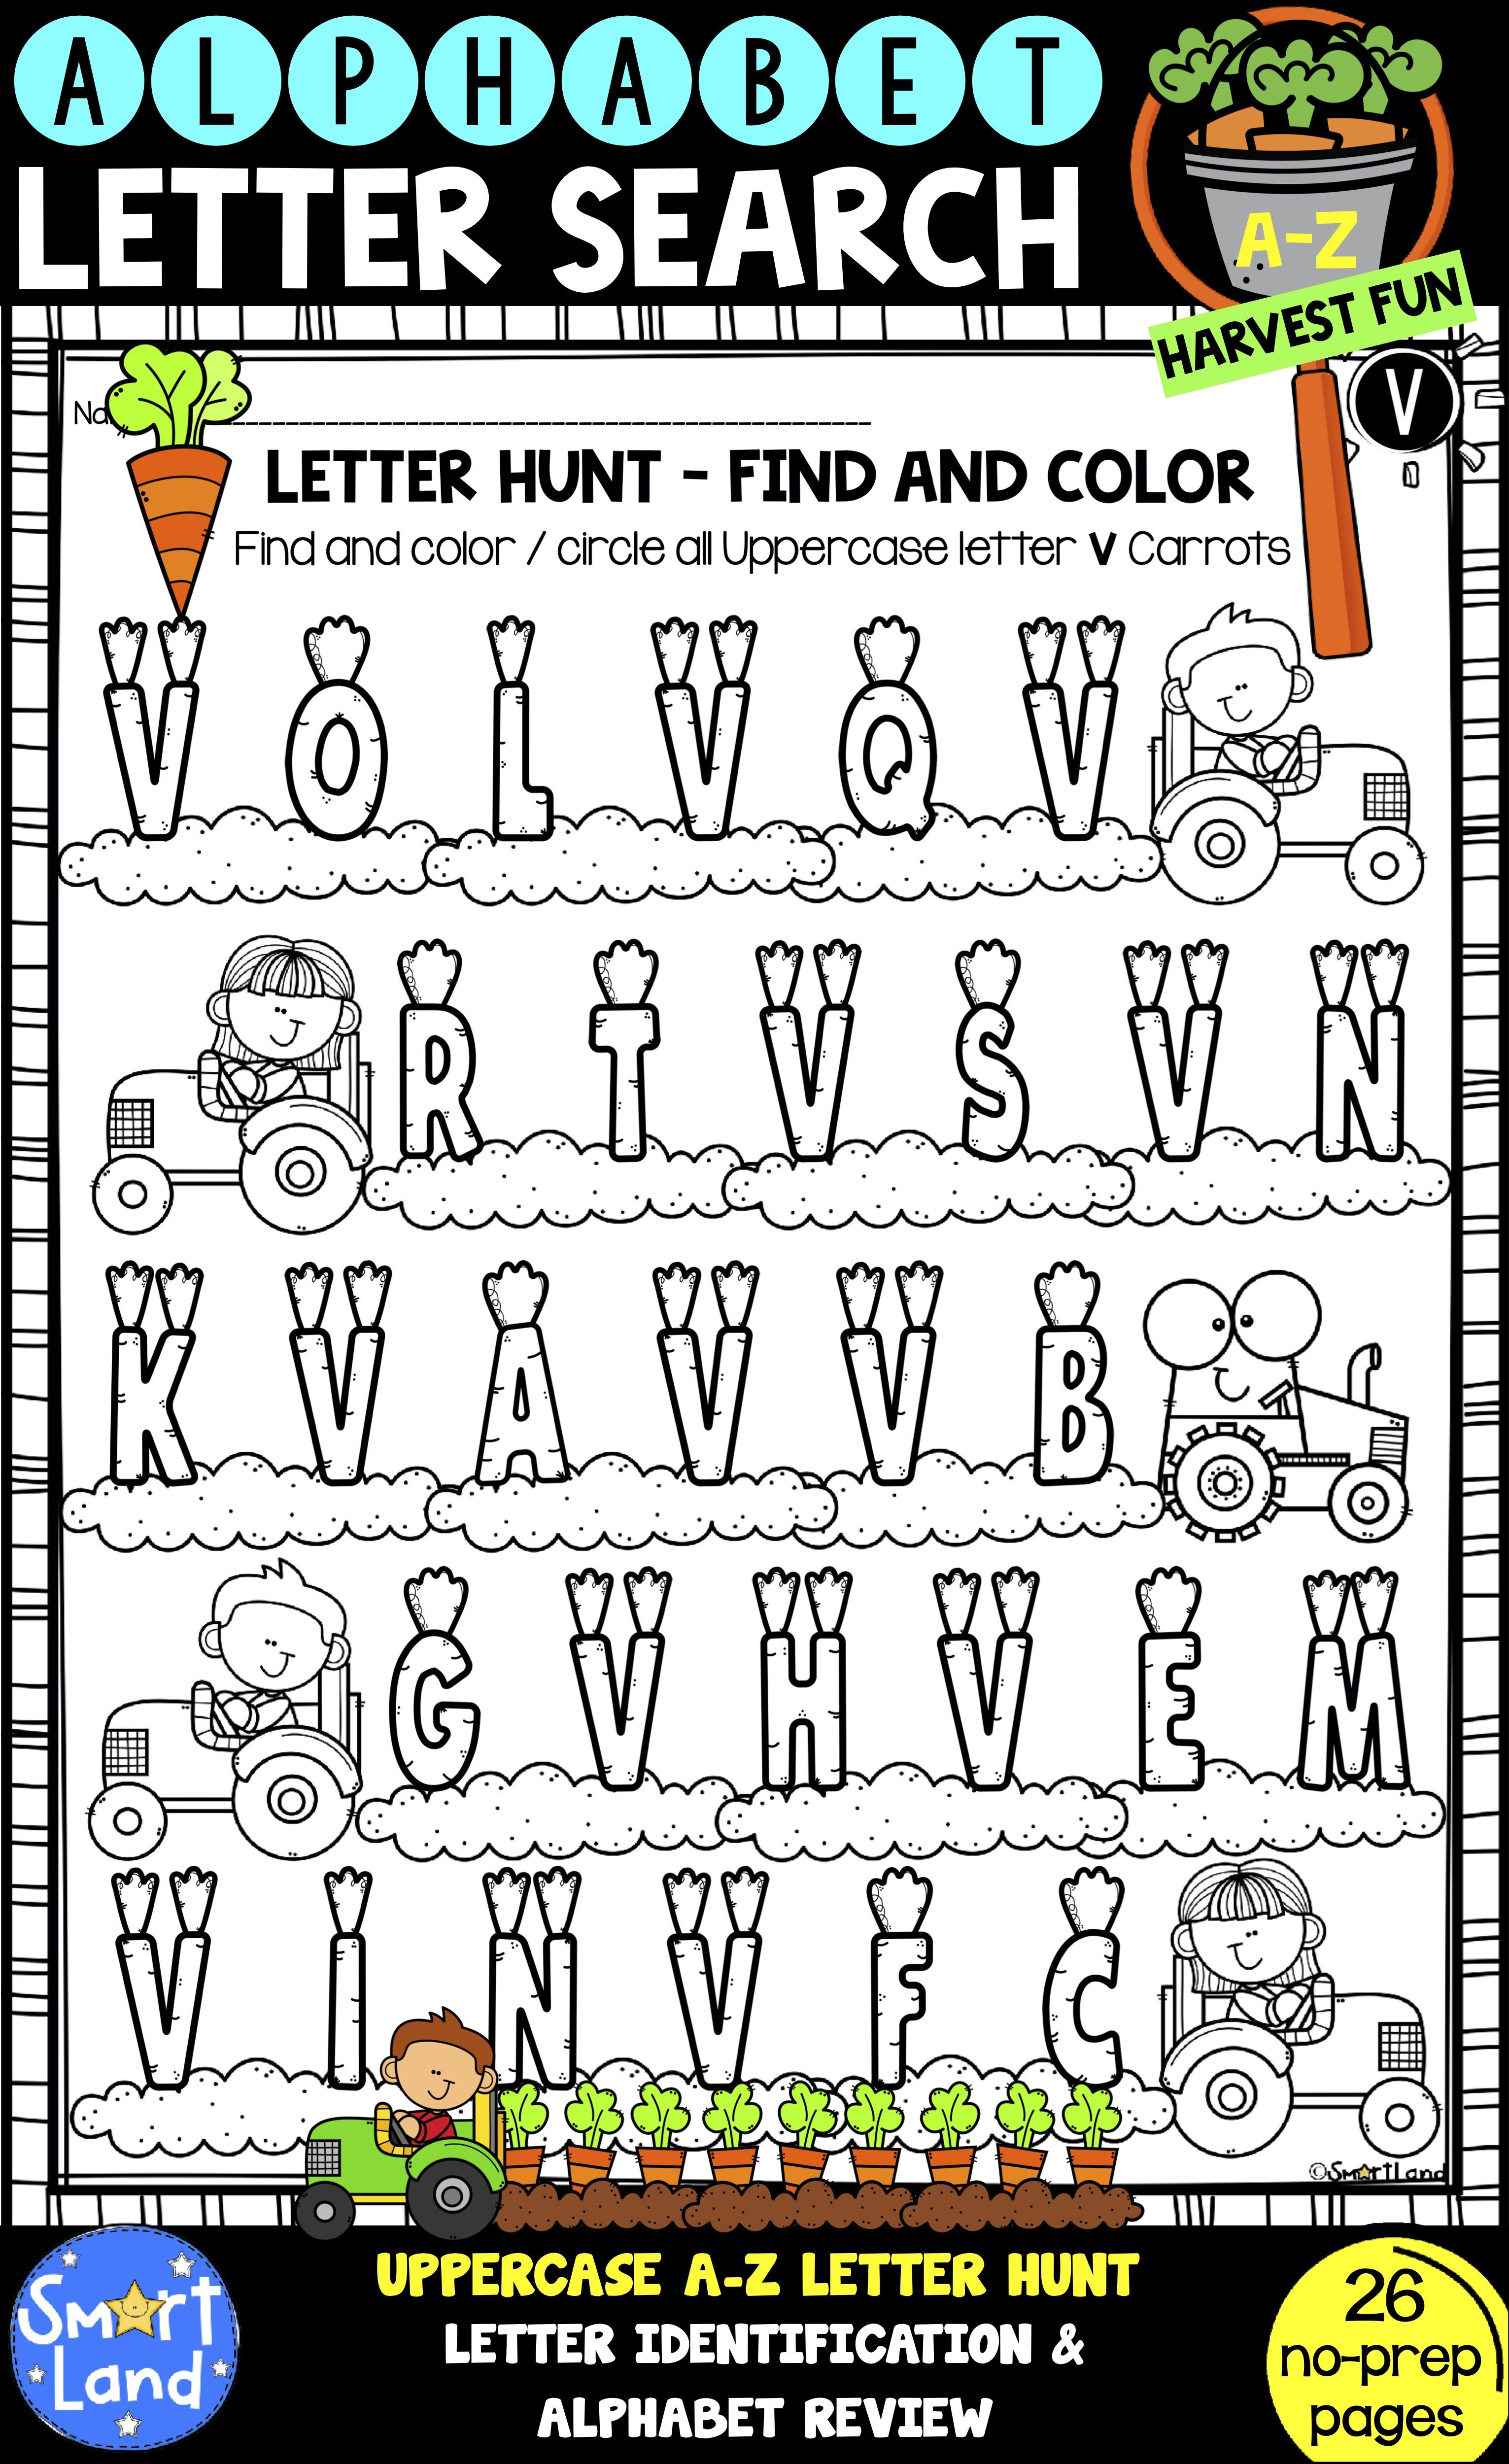 Alphabet Practice Worksheets Letter Search Harvest Fun In